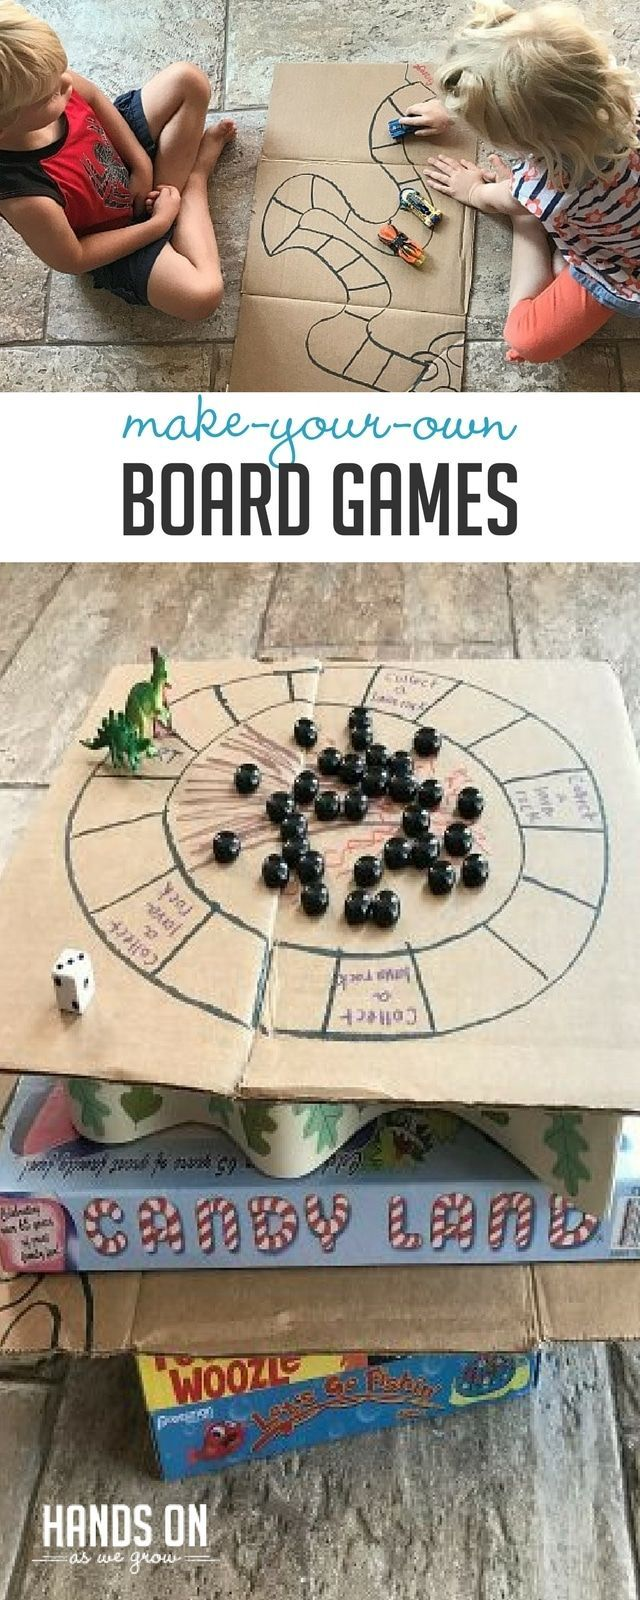 Make Your Own Board Games for Kids